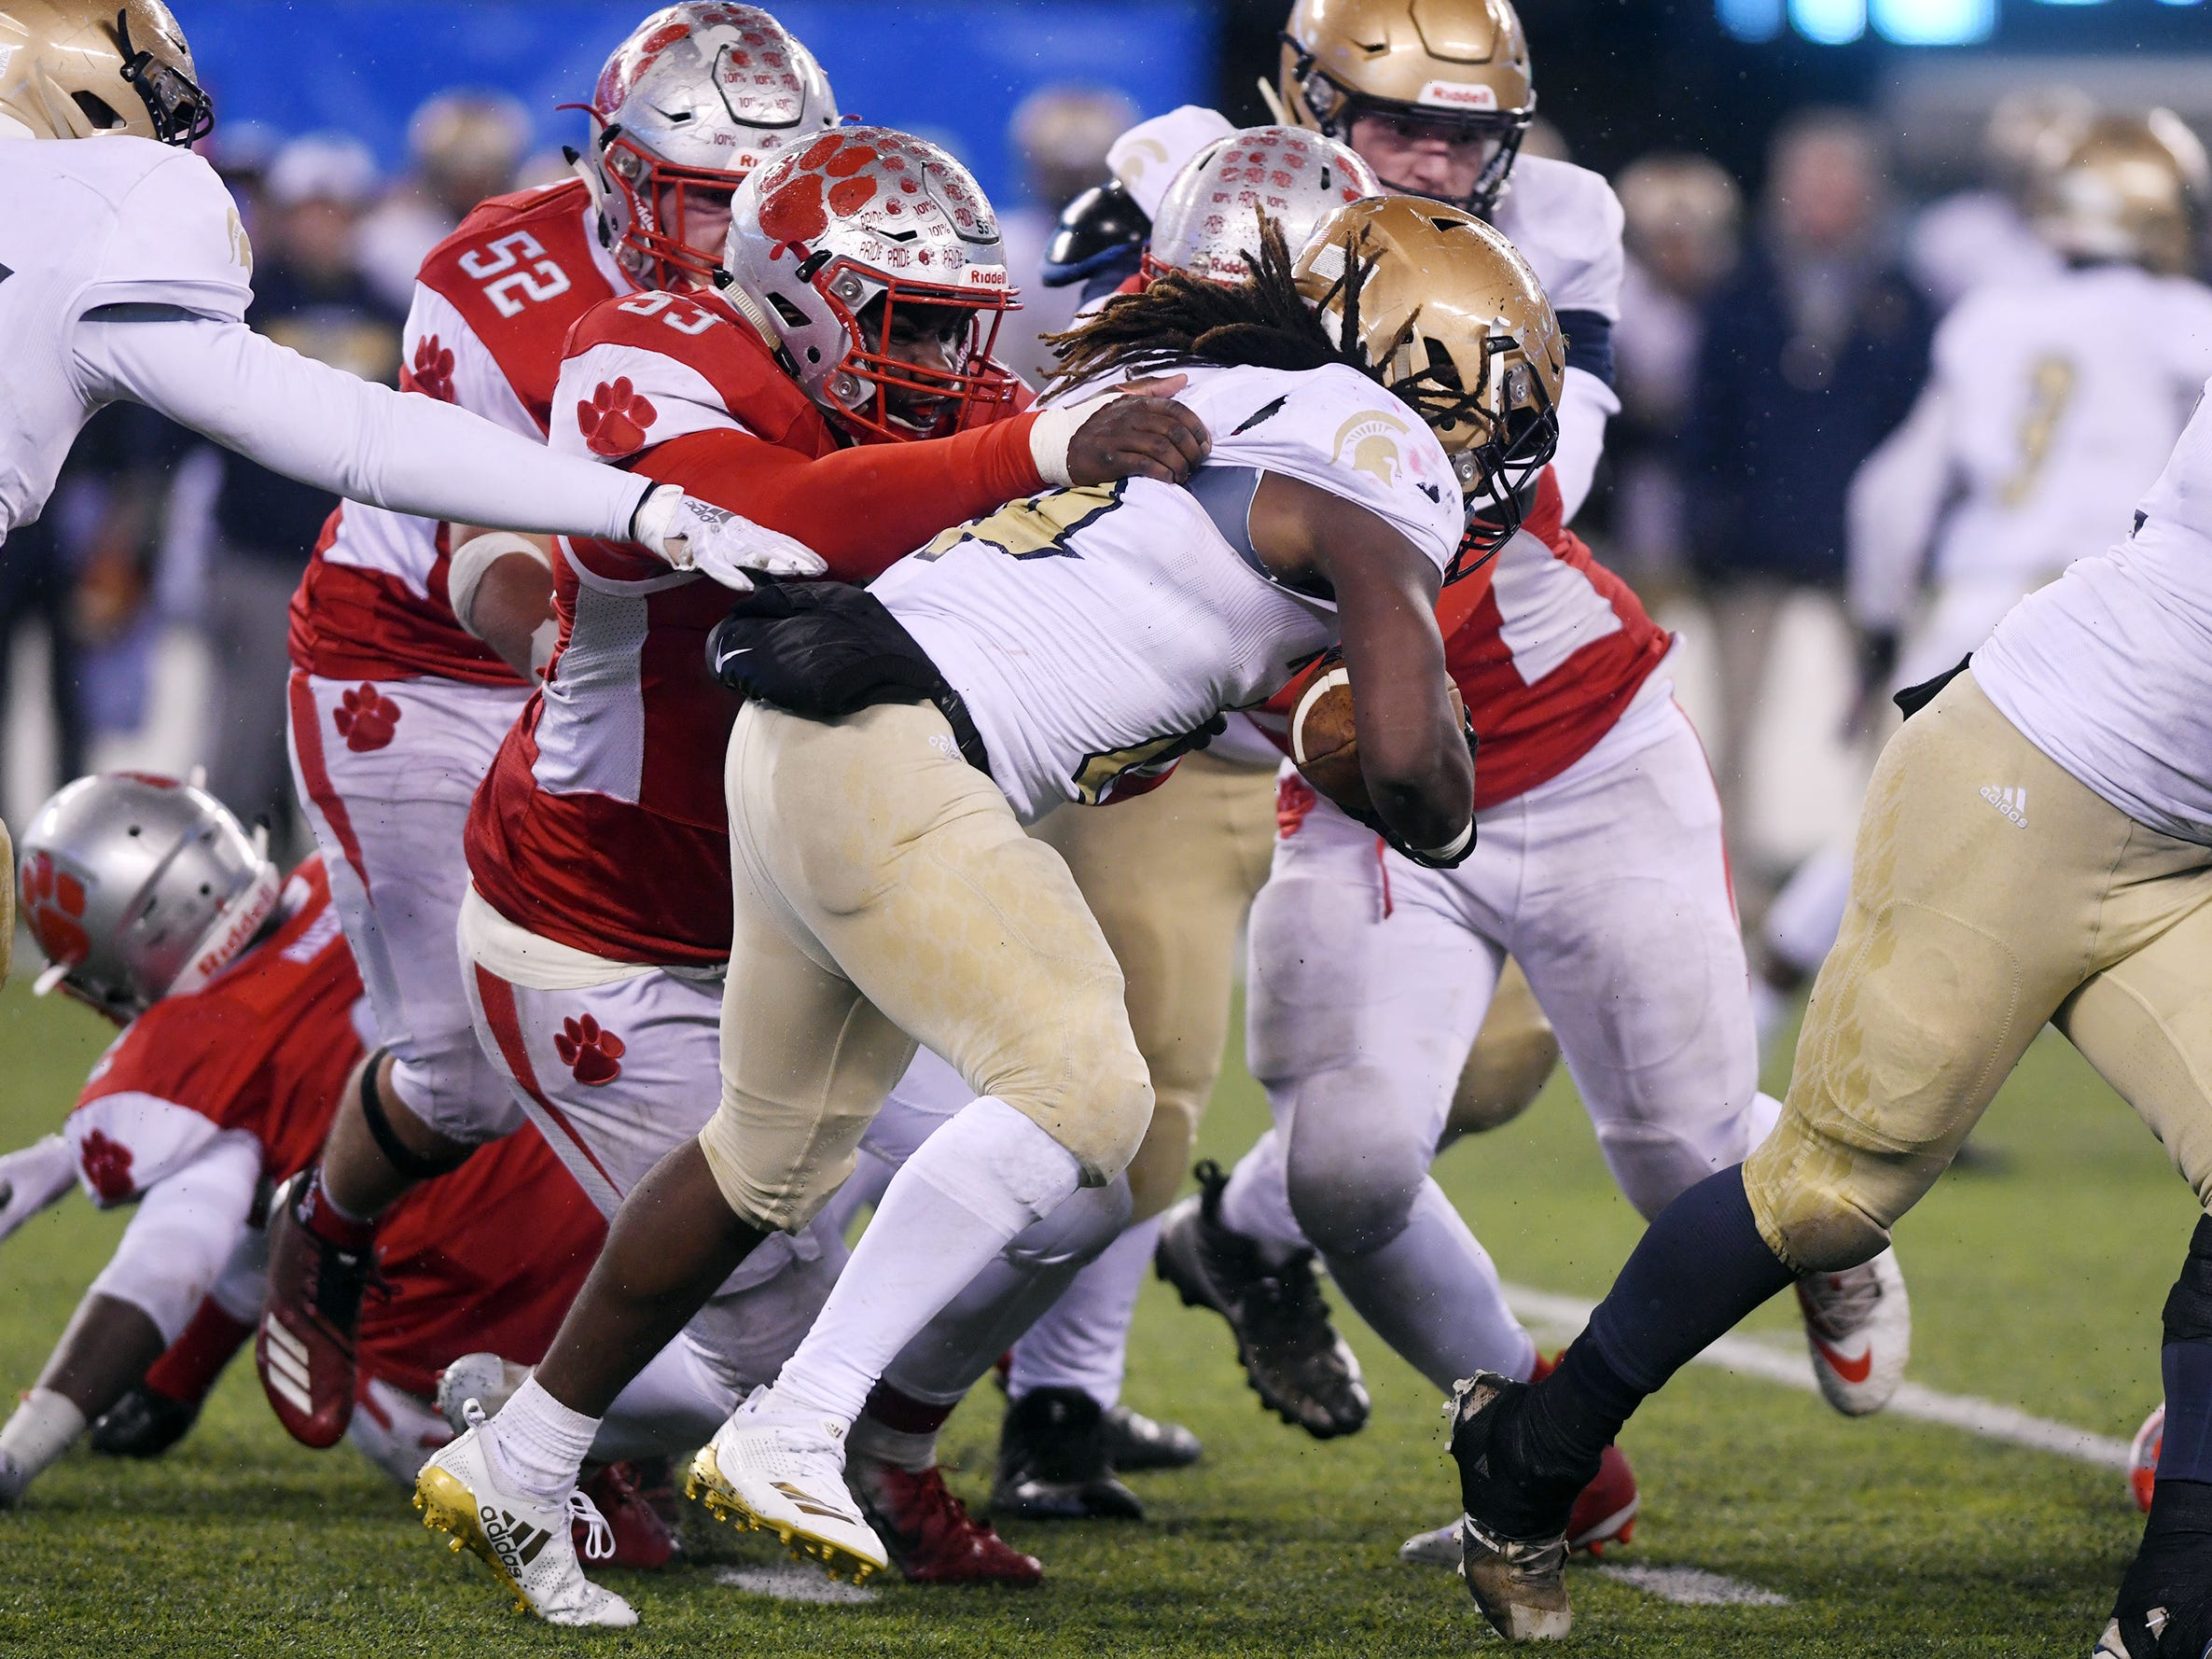 Holy Spirit's E'lijah Gray is tackled by St. Joseph's Sean Morris. The Wildcats topped the Spartans, 41-22 at MetLife Stadium on Friday, November 30, 2018.